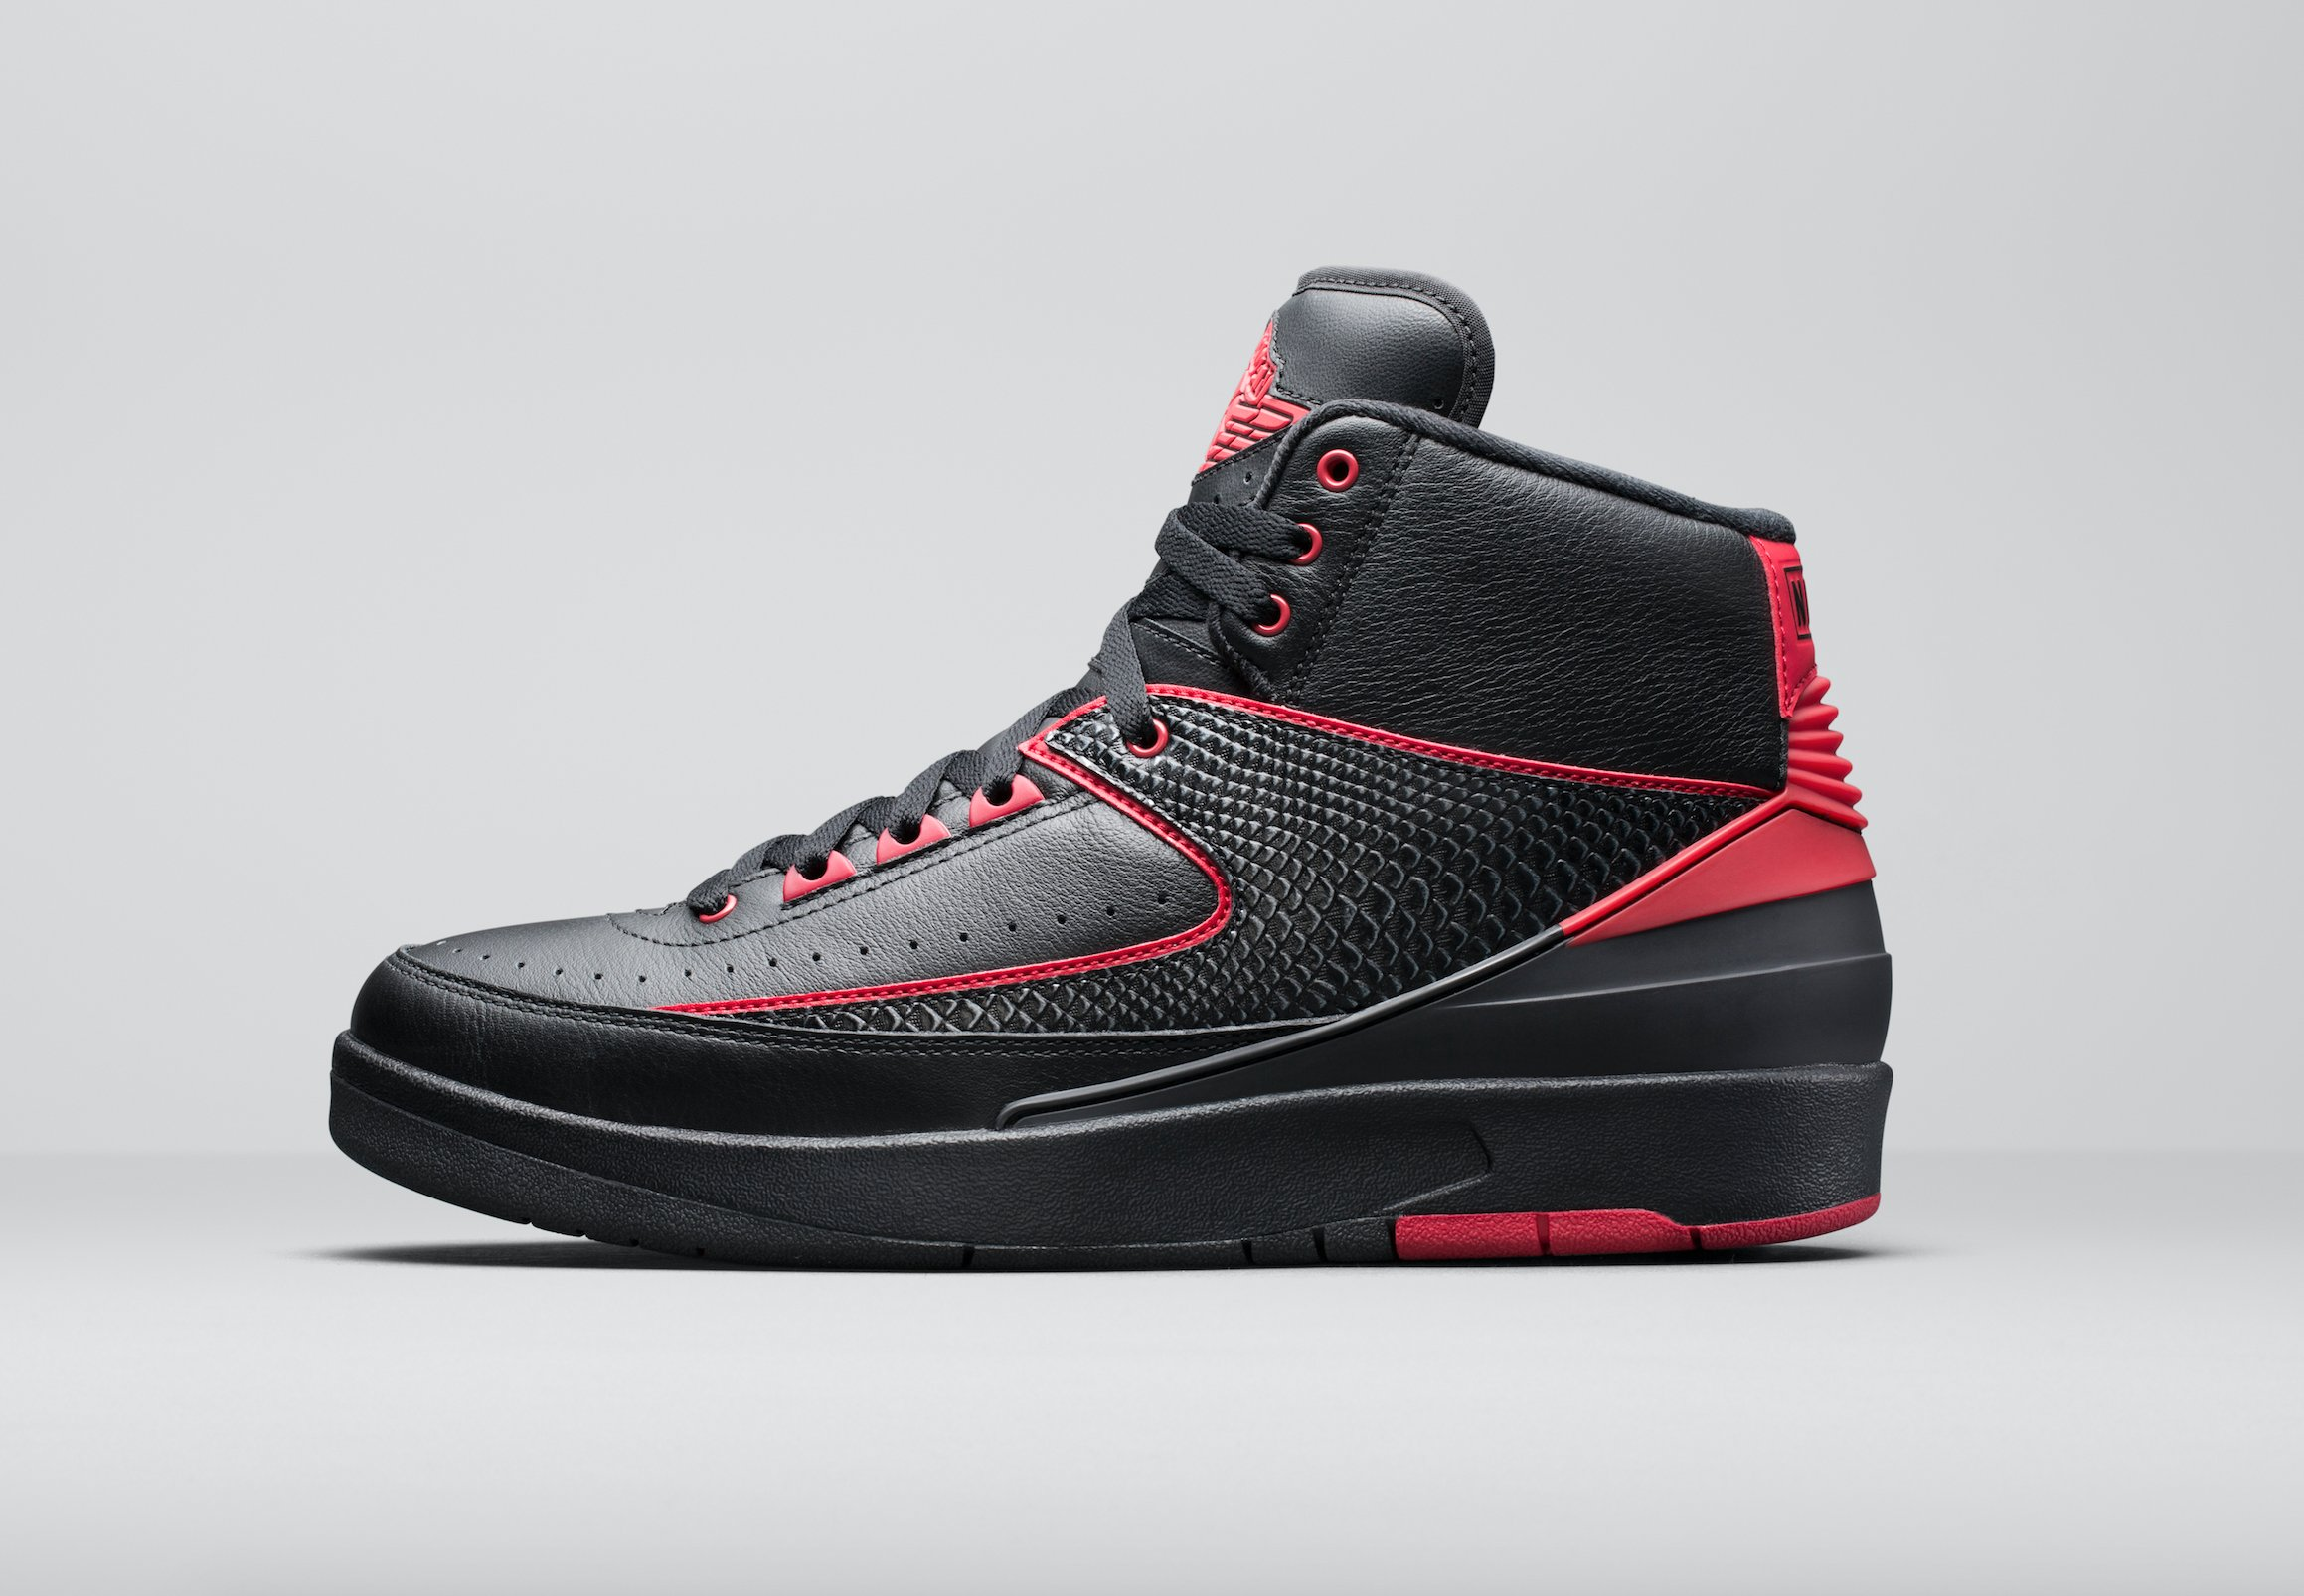 6cb1f174d7a Air Jordan 2 Alternate 87 Release Date, Official Images - Air 23 ...